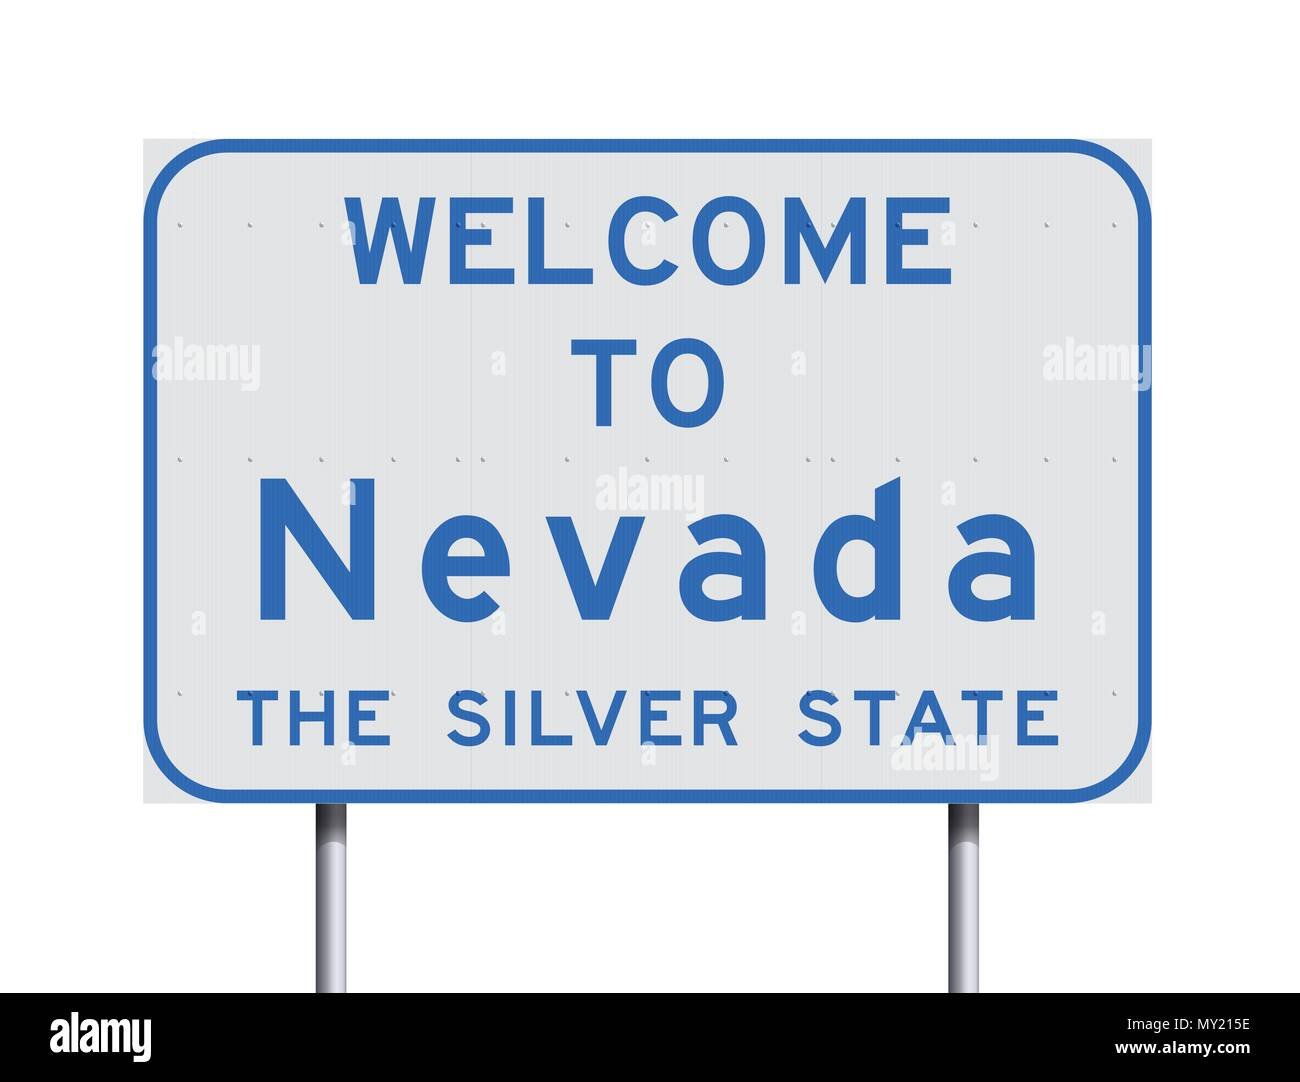 Vector Illustration Of The Welcome To Nevada White And Blue Road Sign With The Official Nickname The Silver State Stock Vector Image Art Alamy